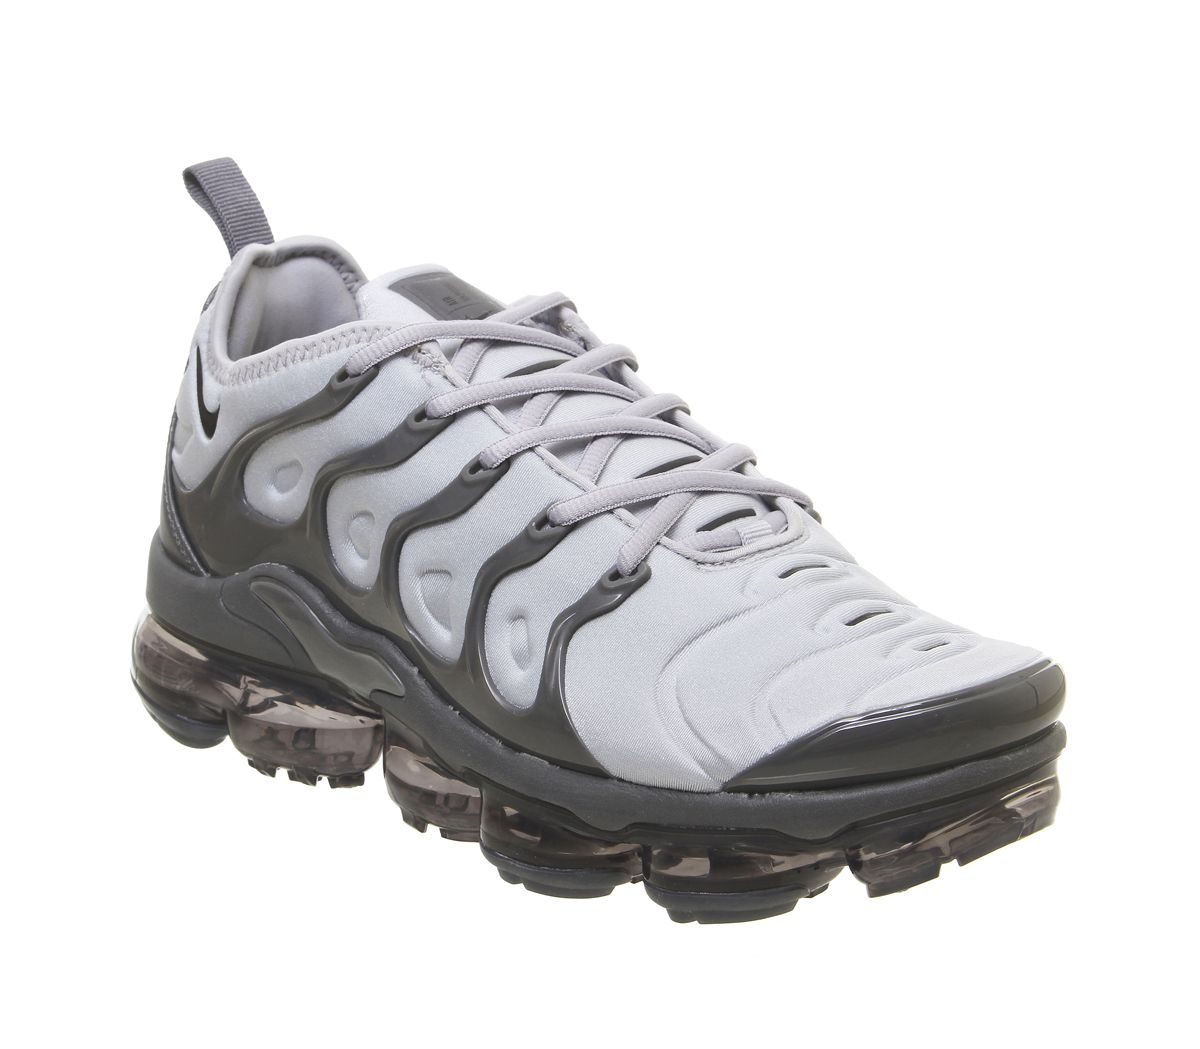 6a7e4fe22e Nike Vapormax Air Vapormax Plus Trainers Wolf Grey Black Grey - His ...